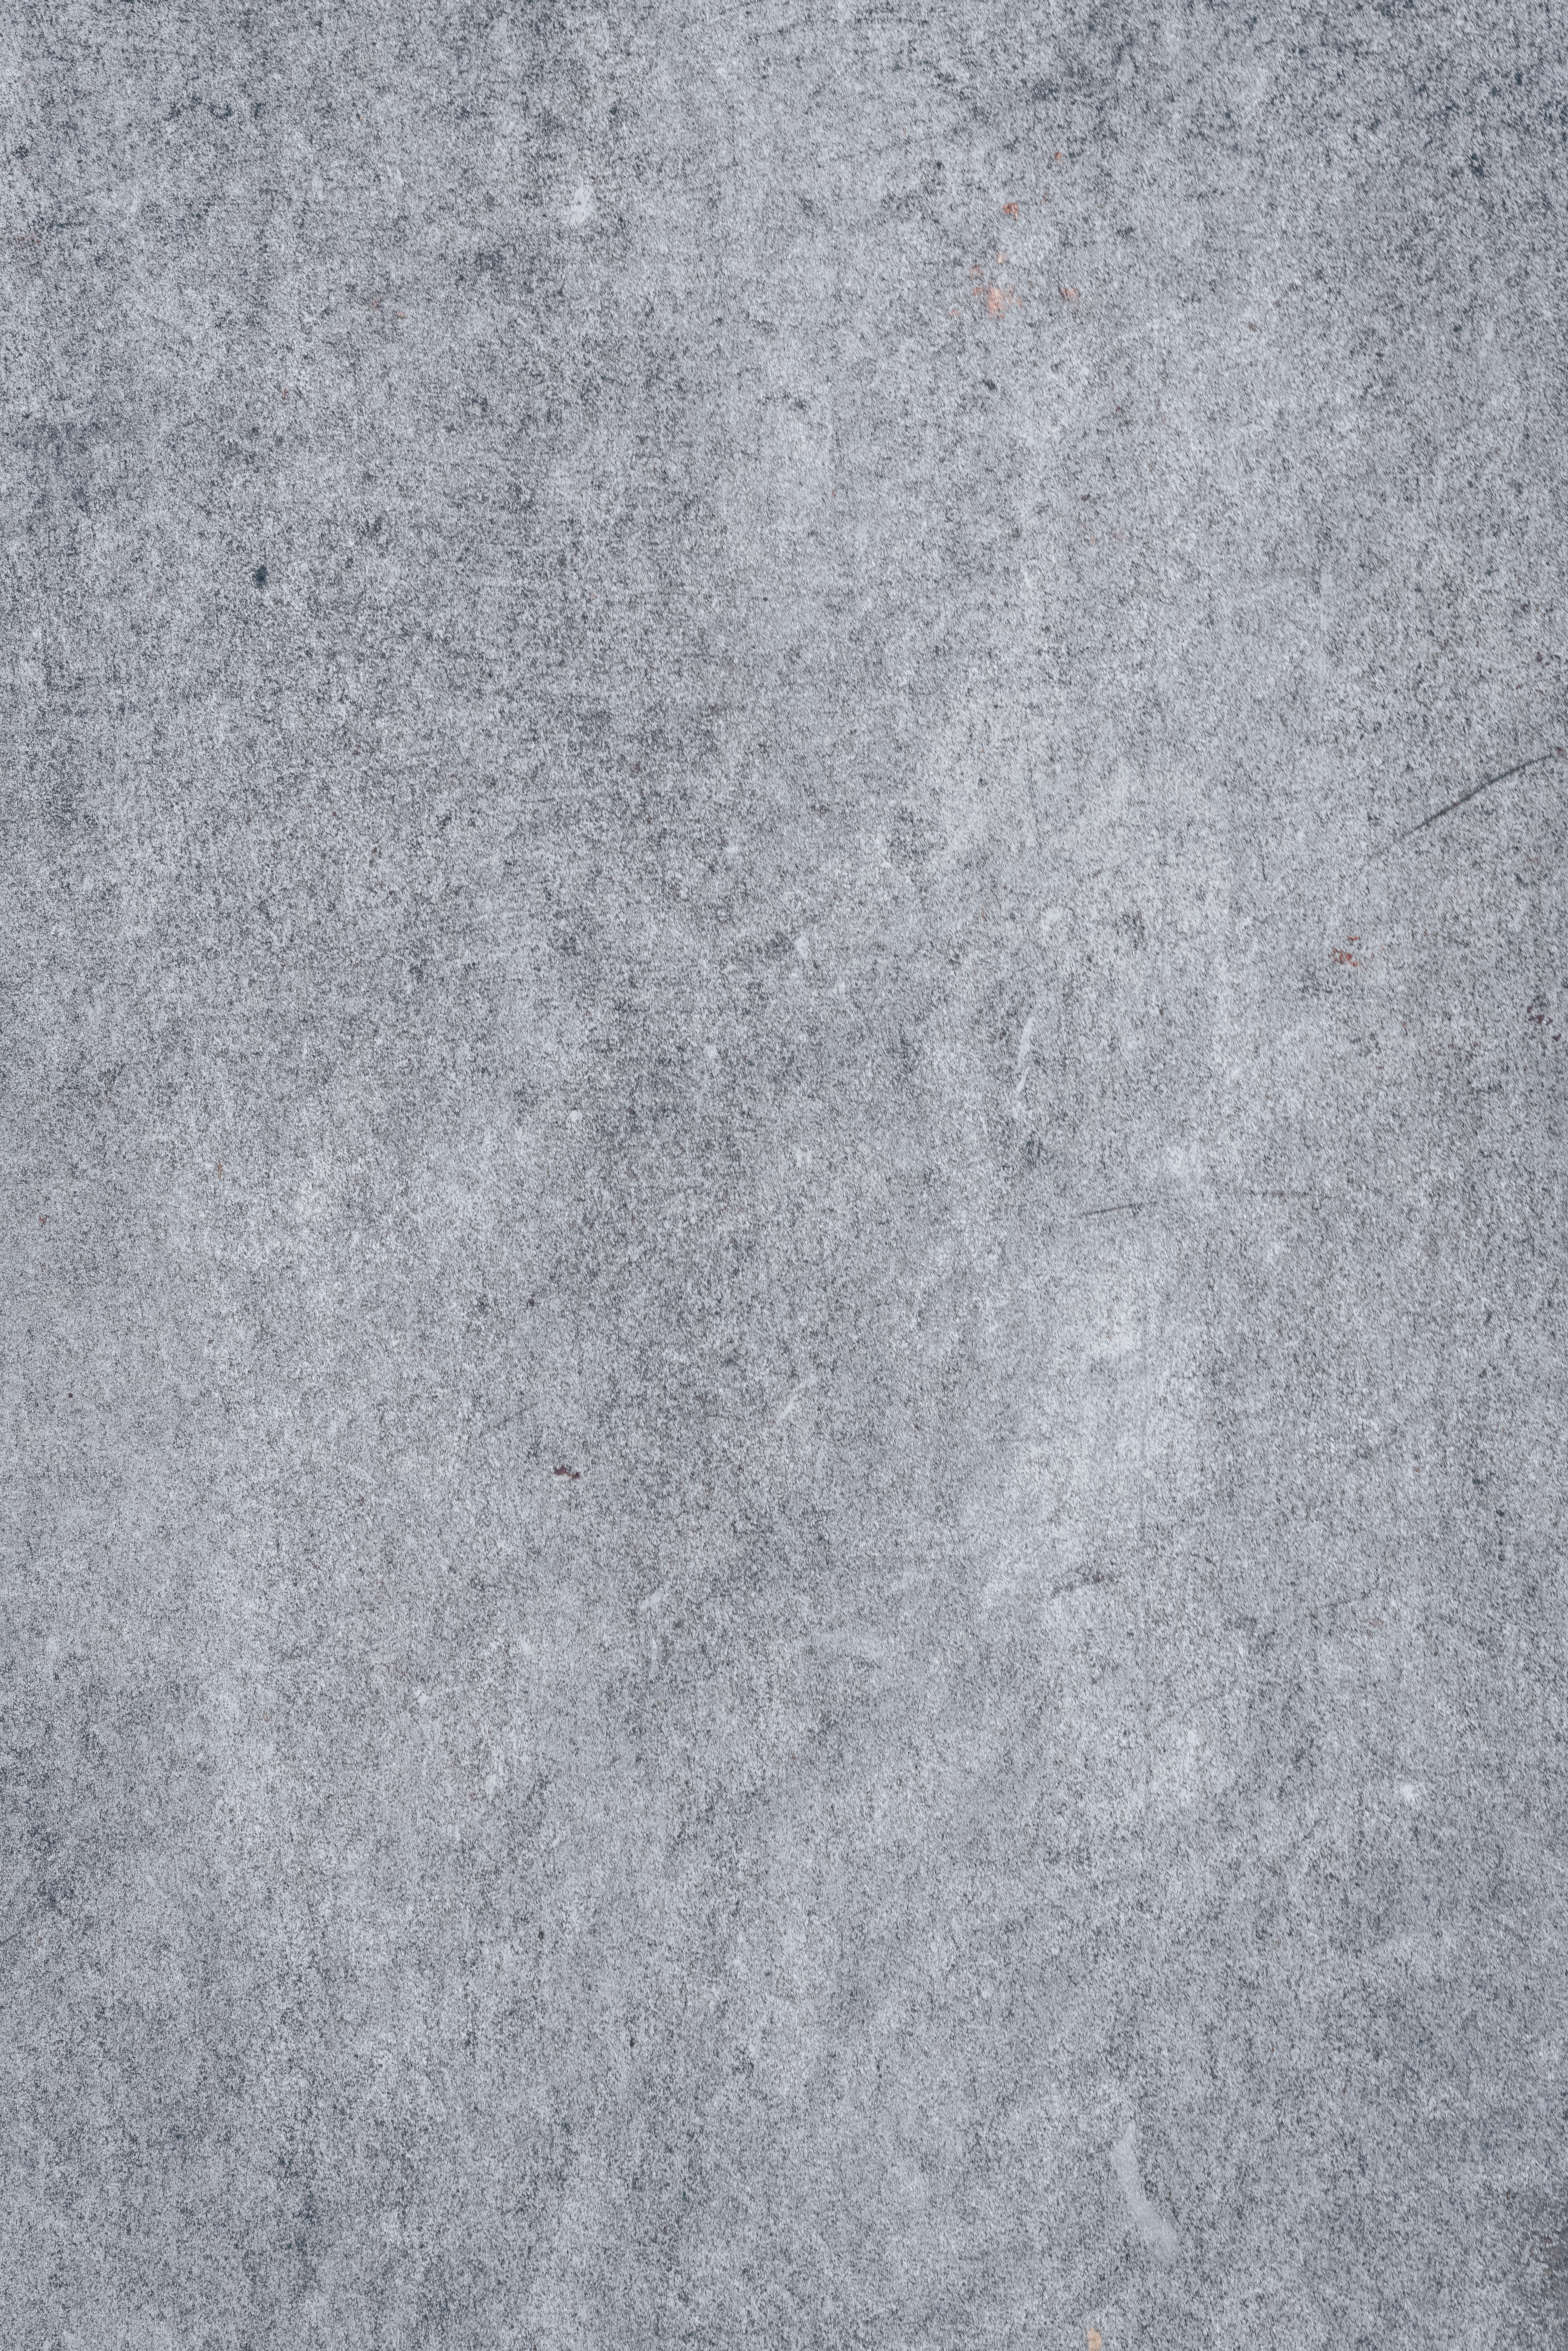 Old stone background texture